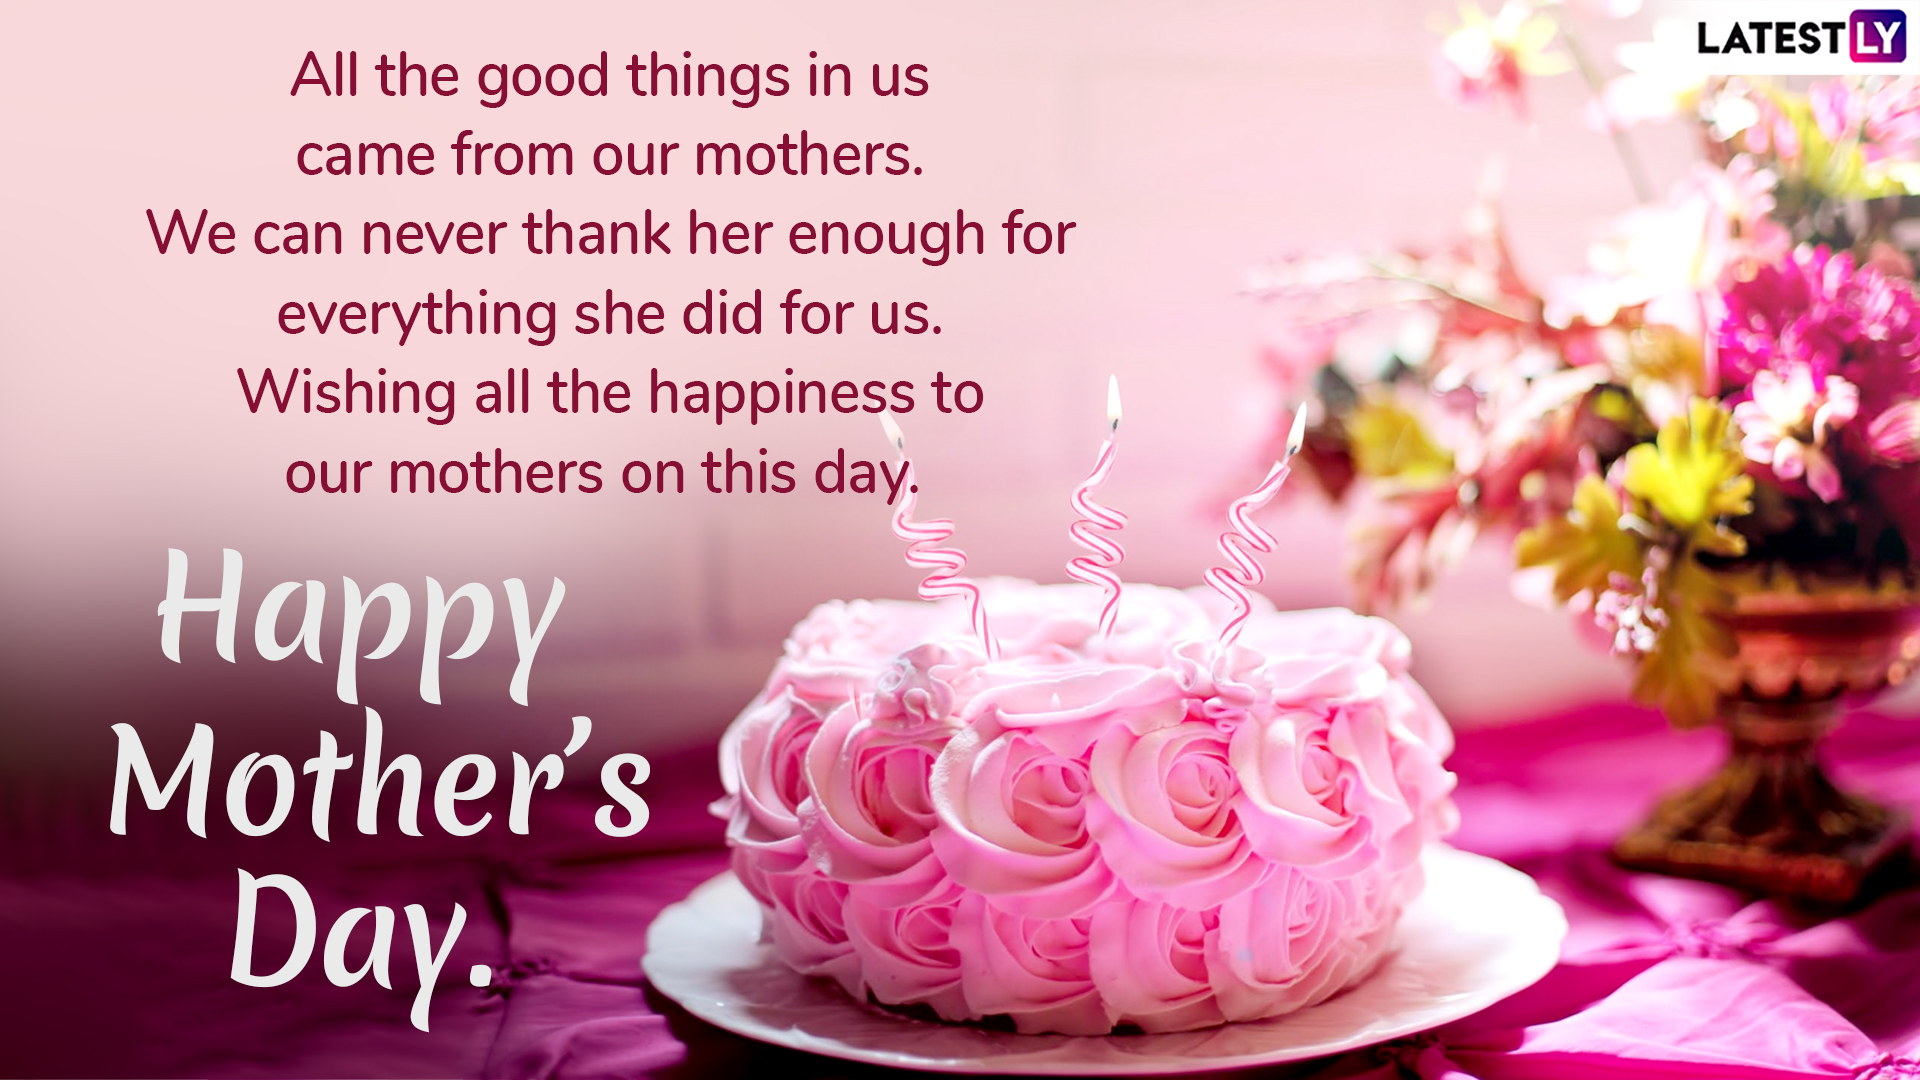 Happy Mother's Day 2019 Greetings: WhatsApp Stickers, SMS ...